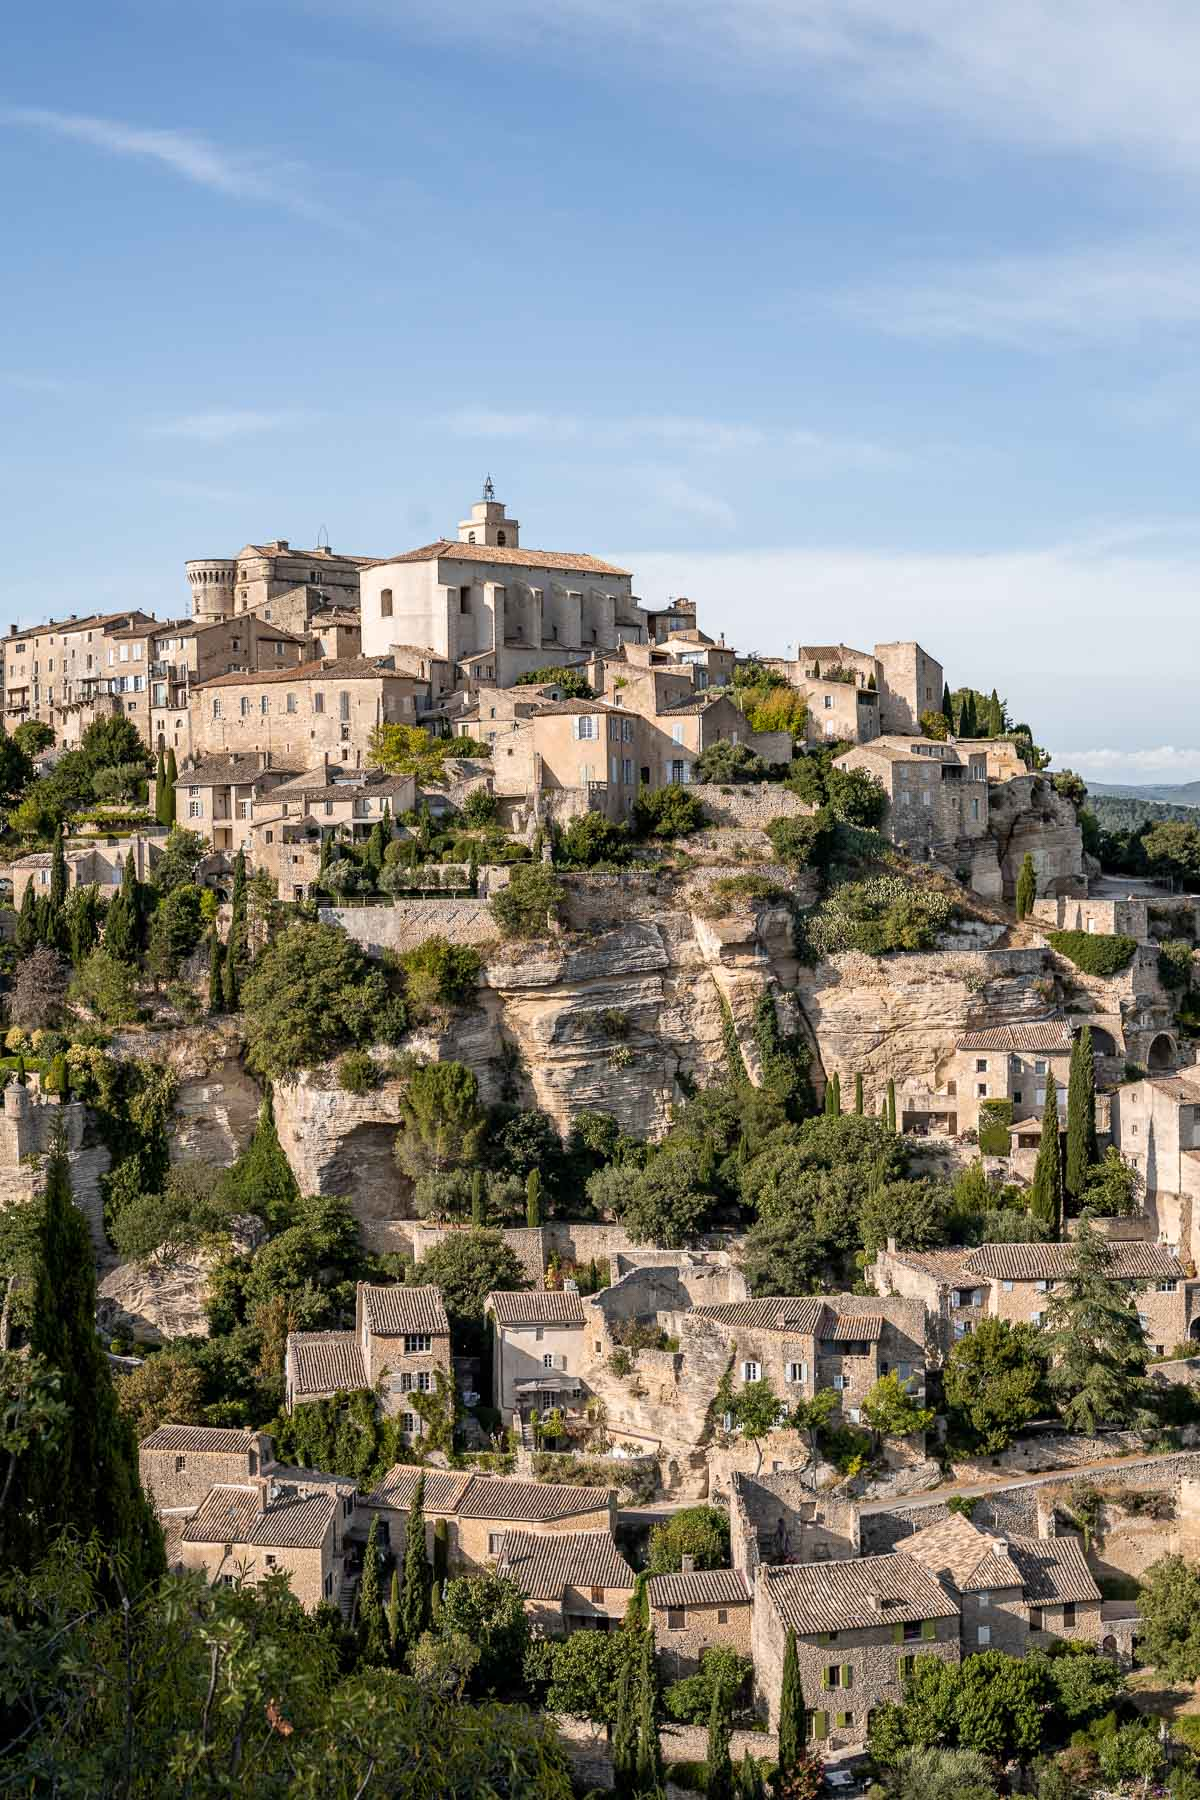 Panoramic view of Gordes in Provence, France